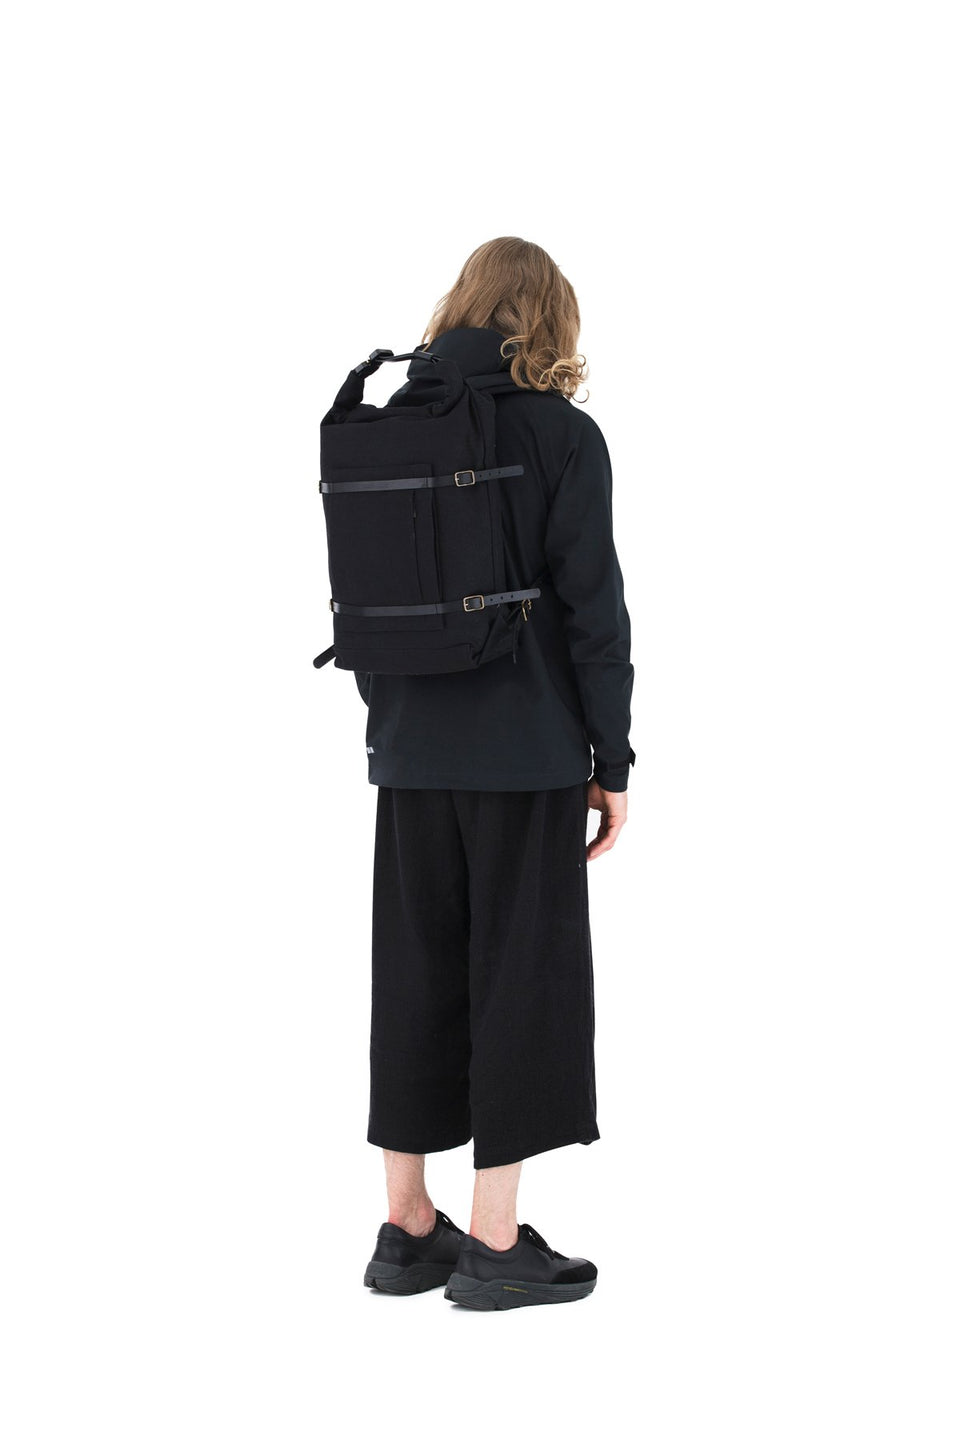 Thisispaper U-tility Backpack Solid Black